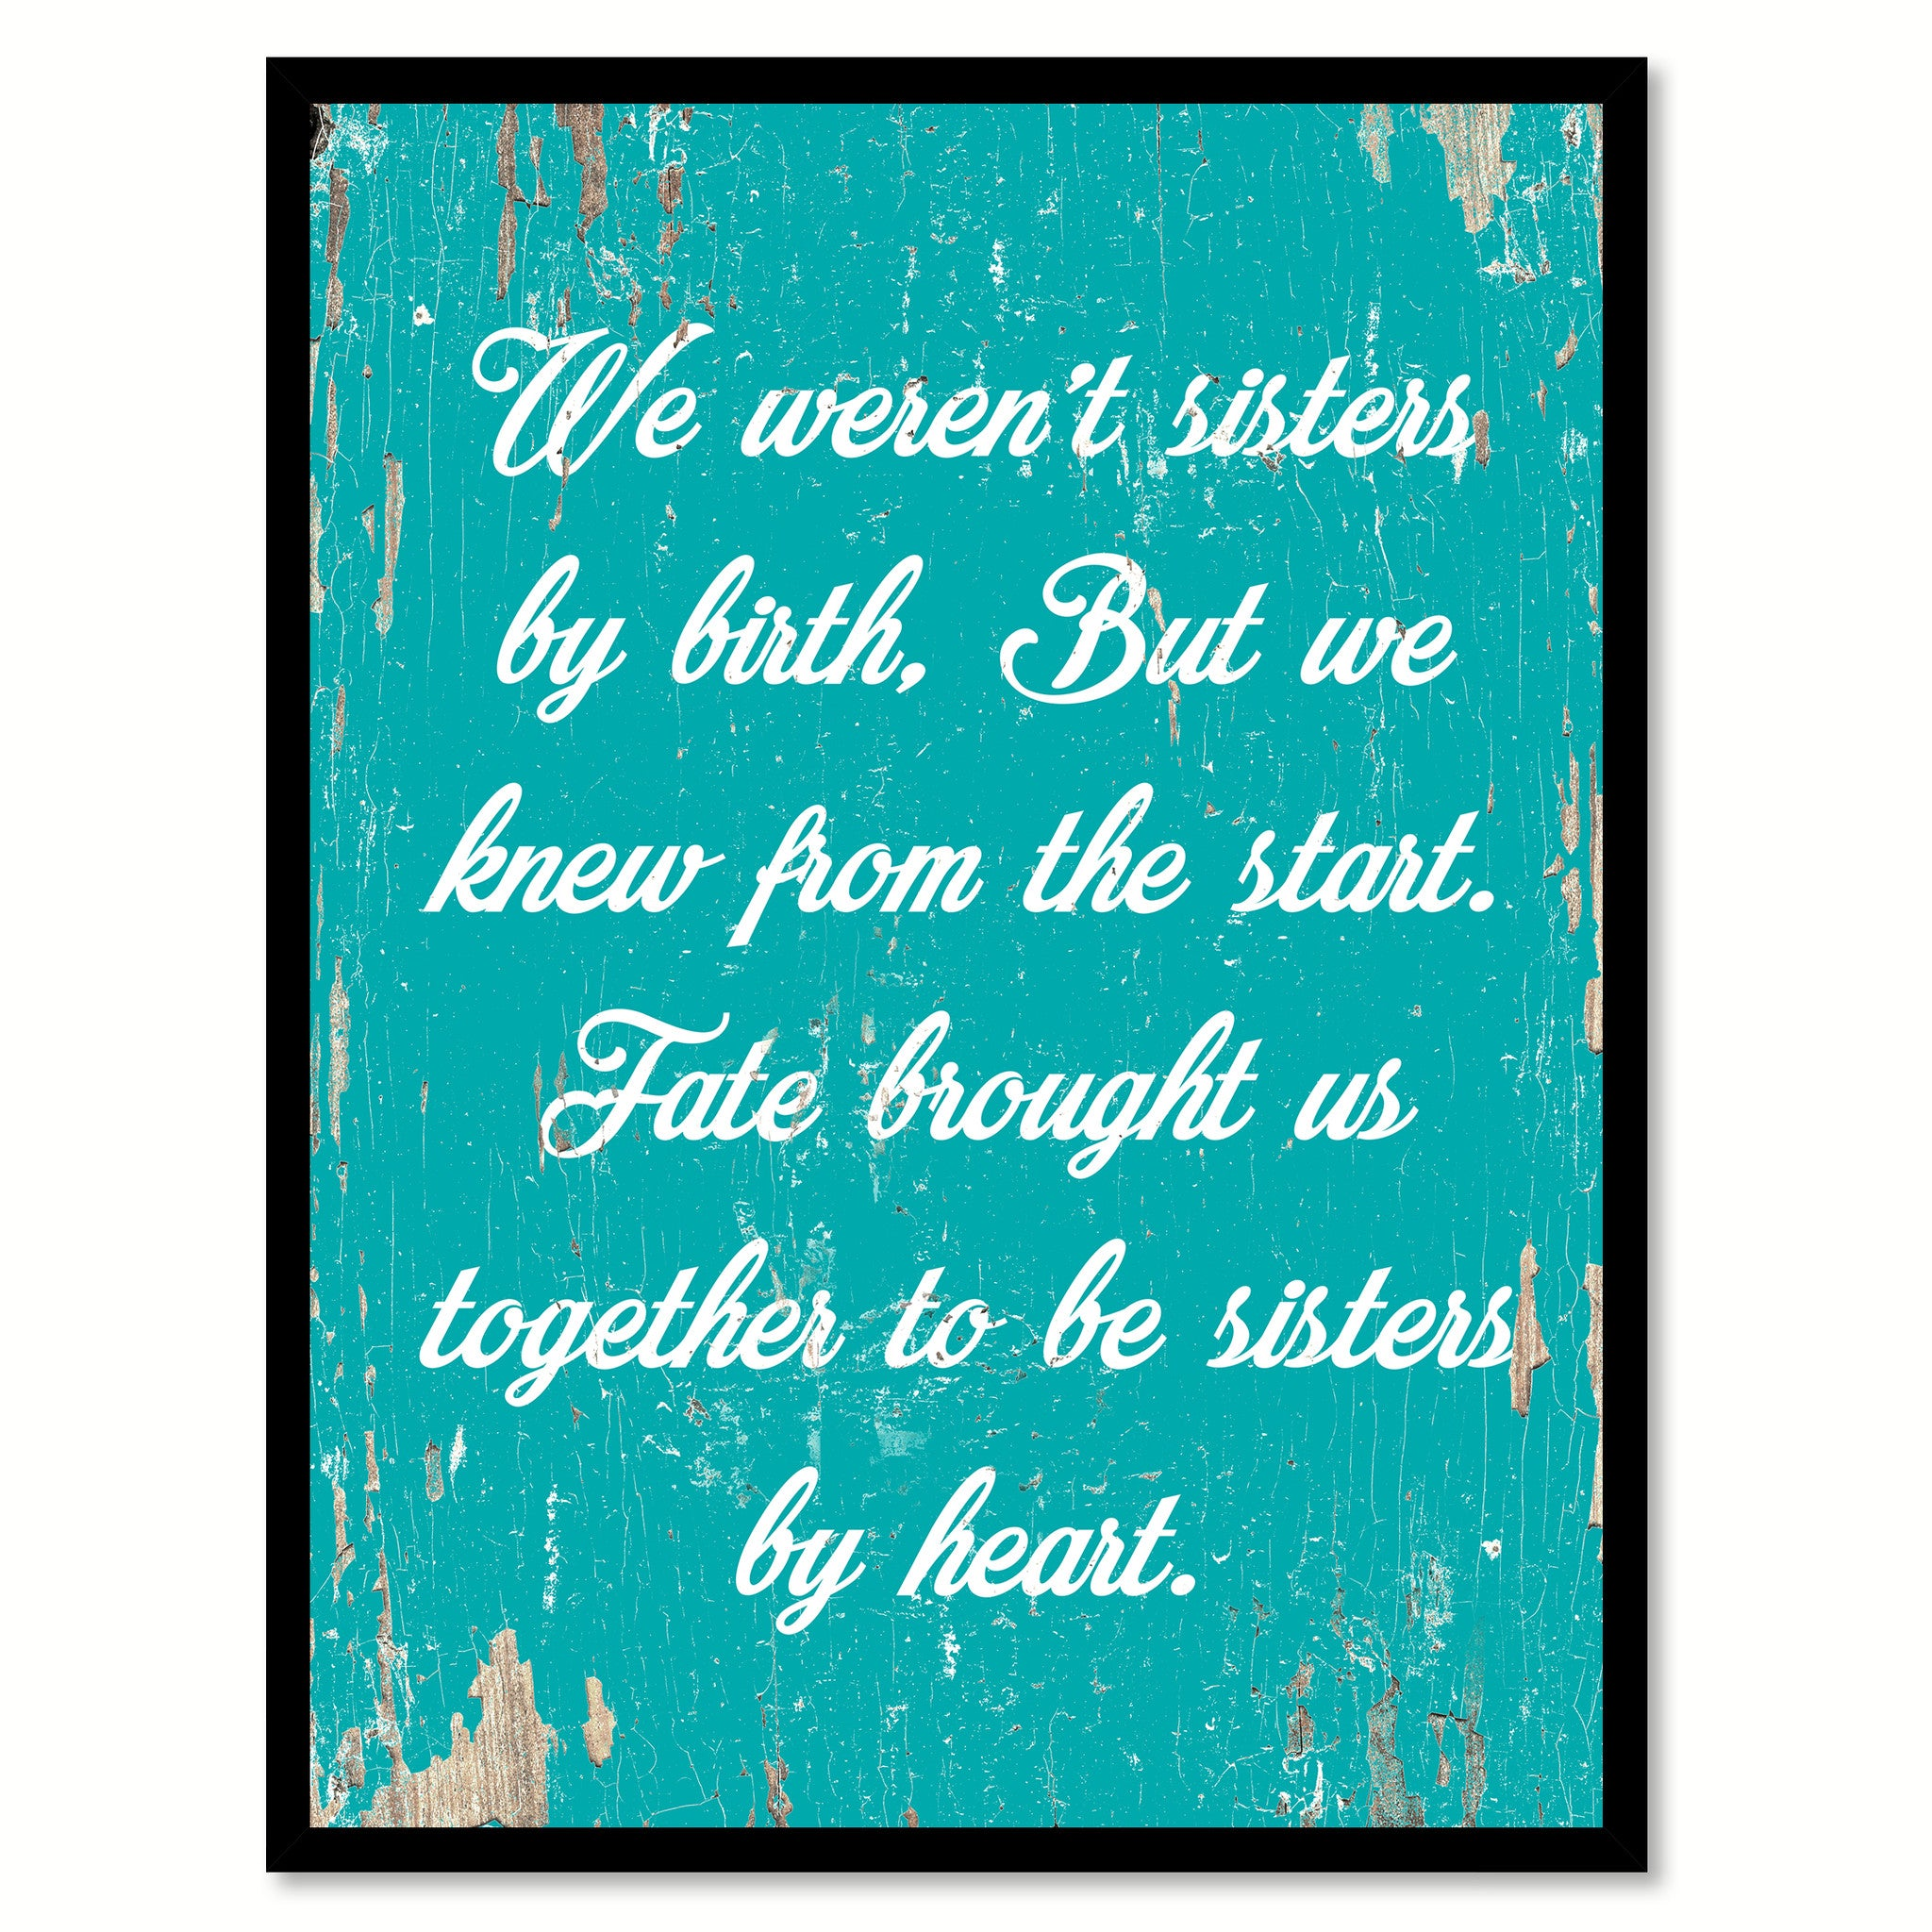 We Werent Sisters By Birth But Knew From The Start Quote Saying Home Decor Wall Art Gift Ideas 111903